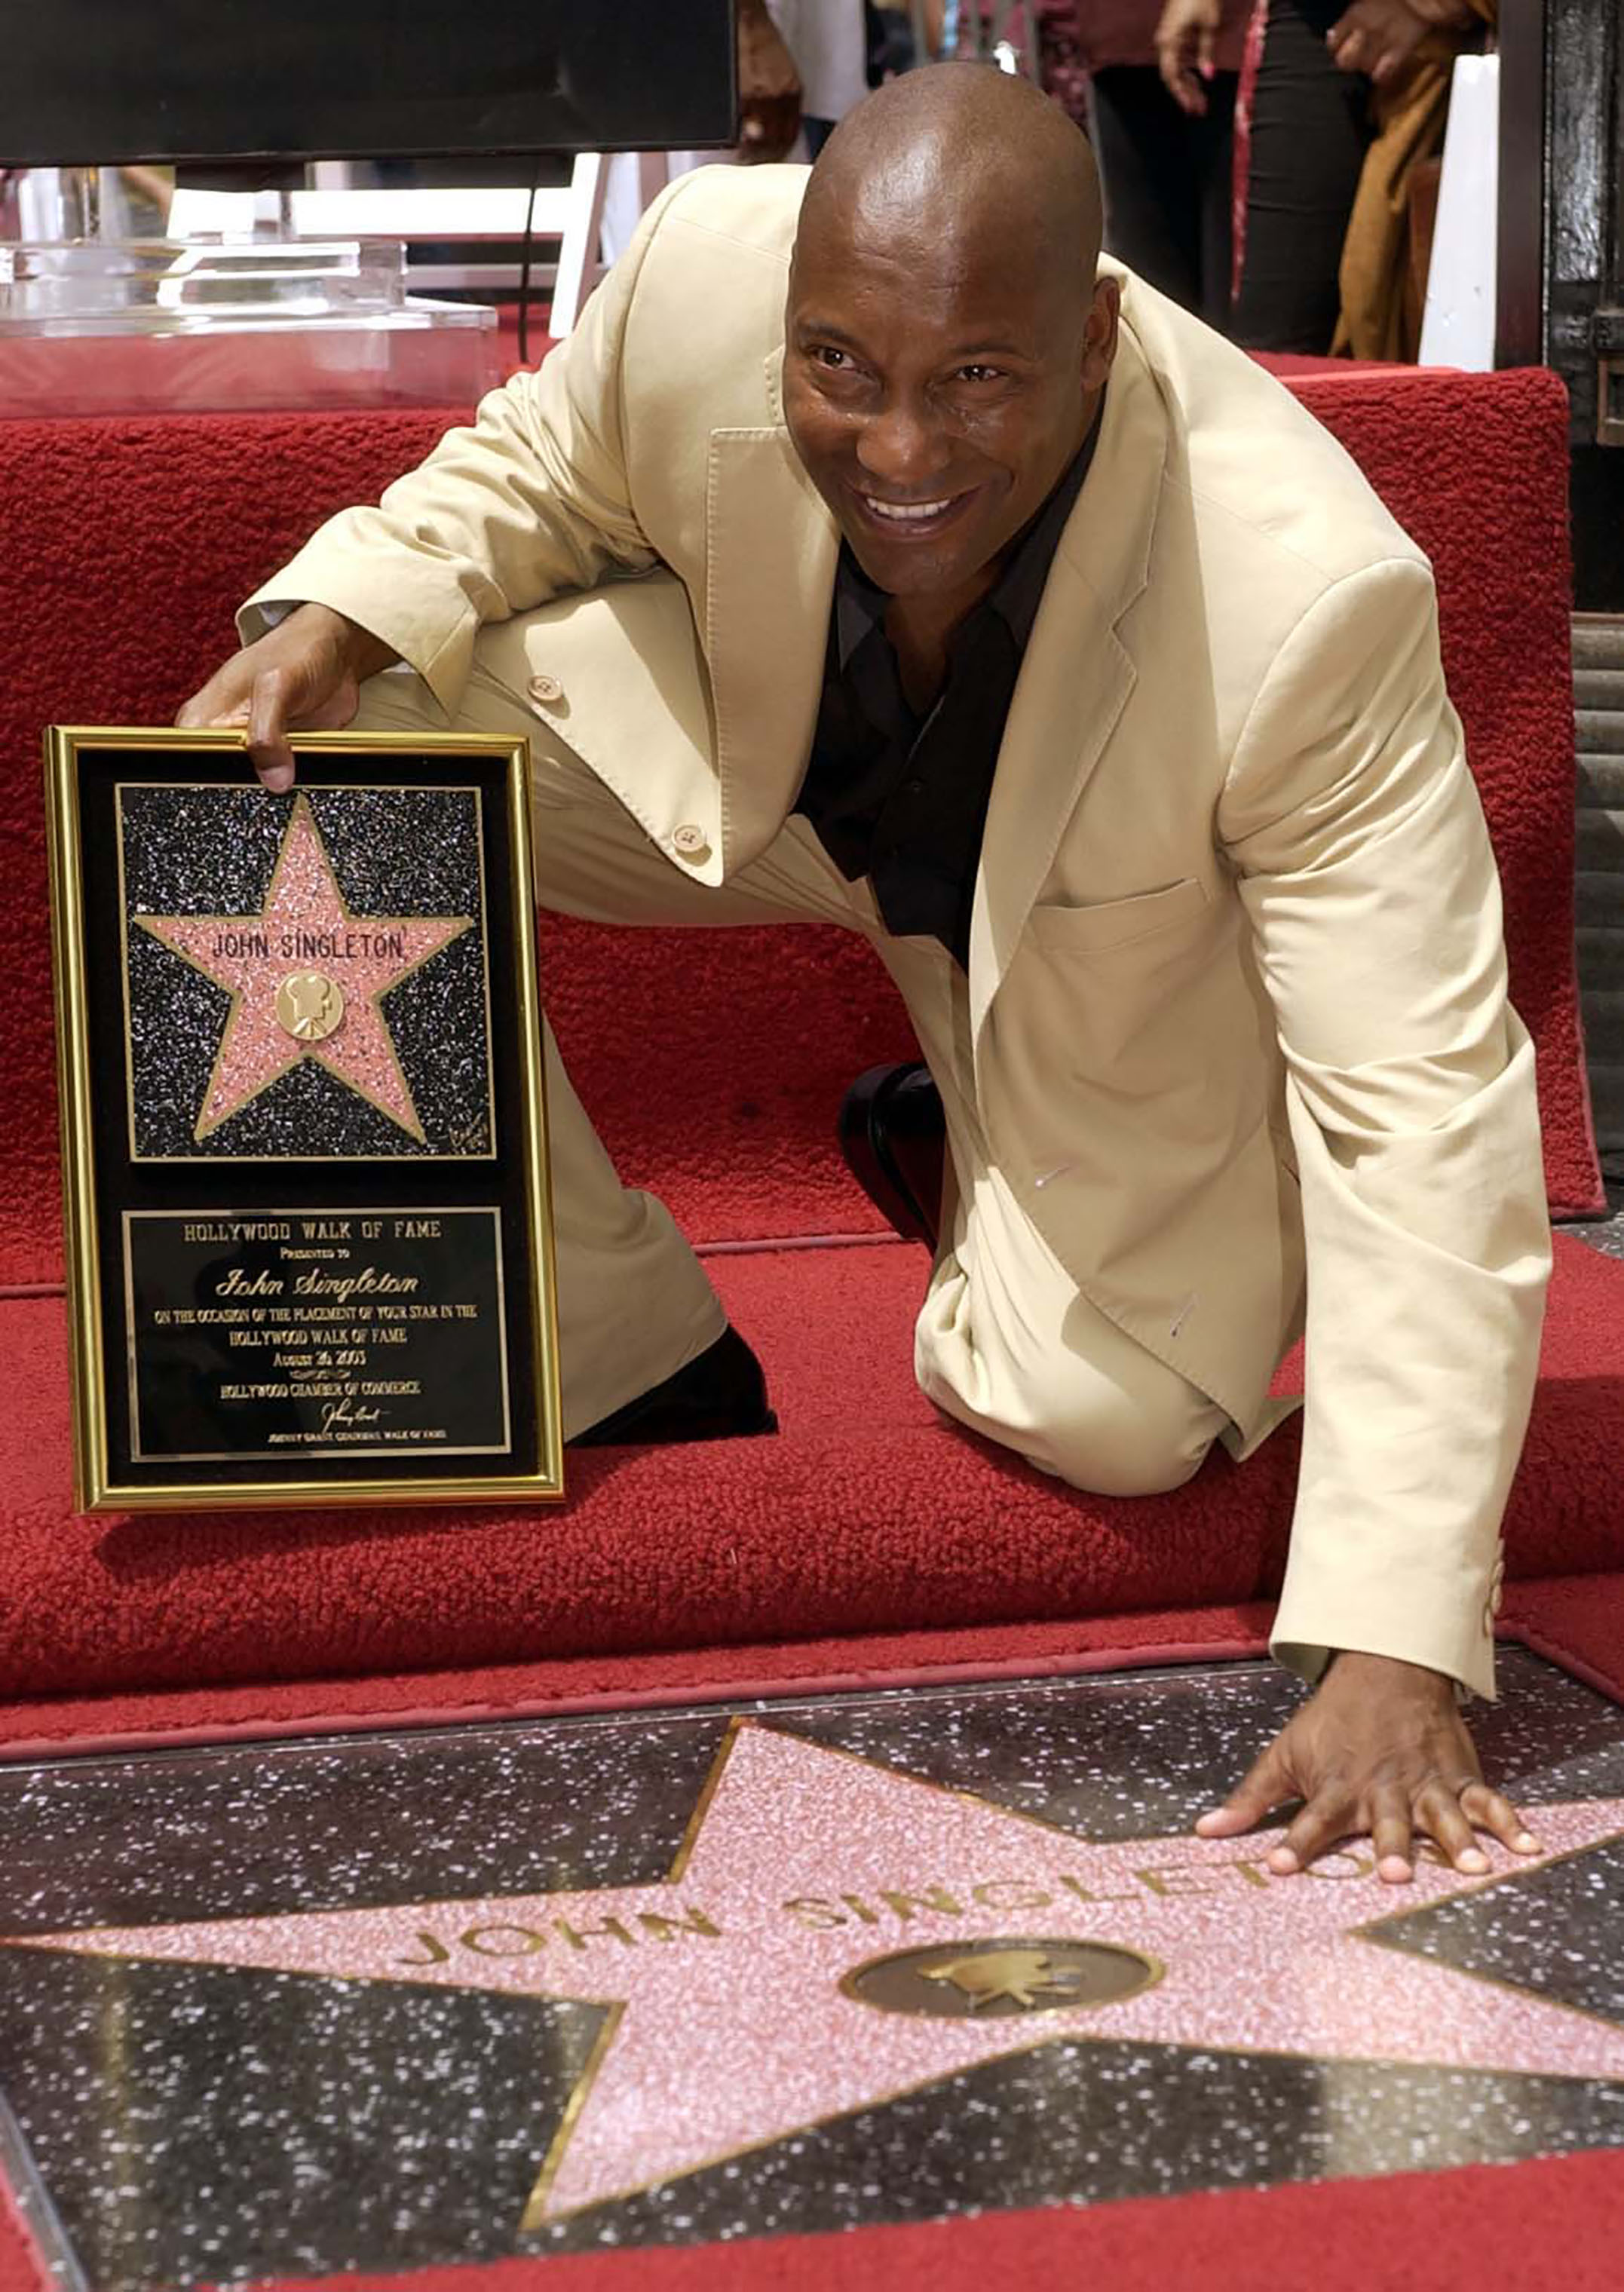 Director John Singleton touches his new star on the Hollywood Walk of Fame in Los Angeles, Tuesday, Aug. 26, 2003.